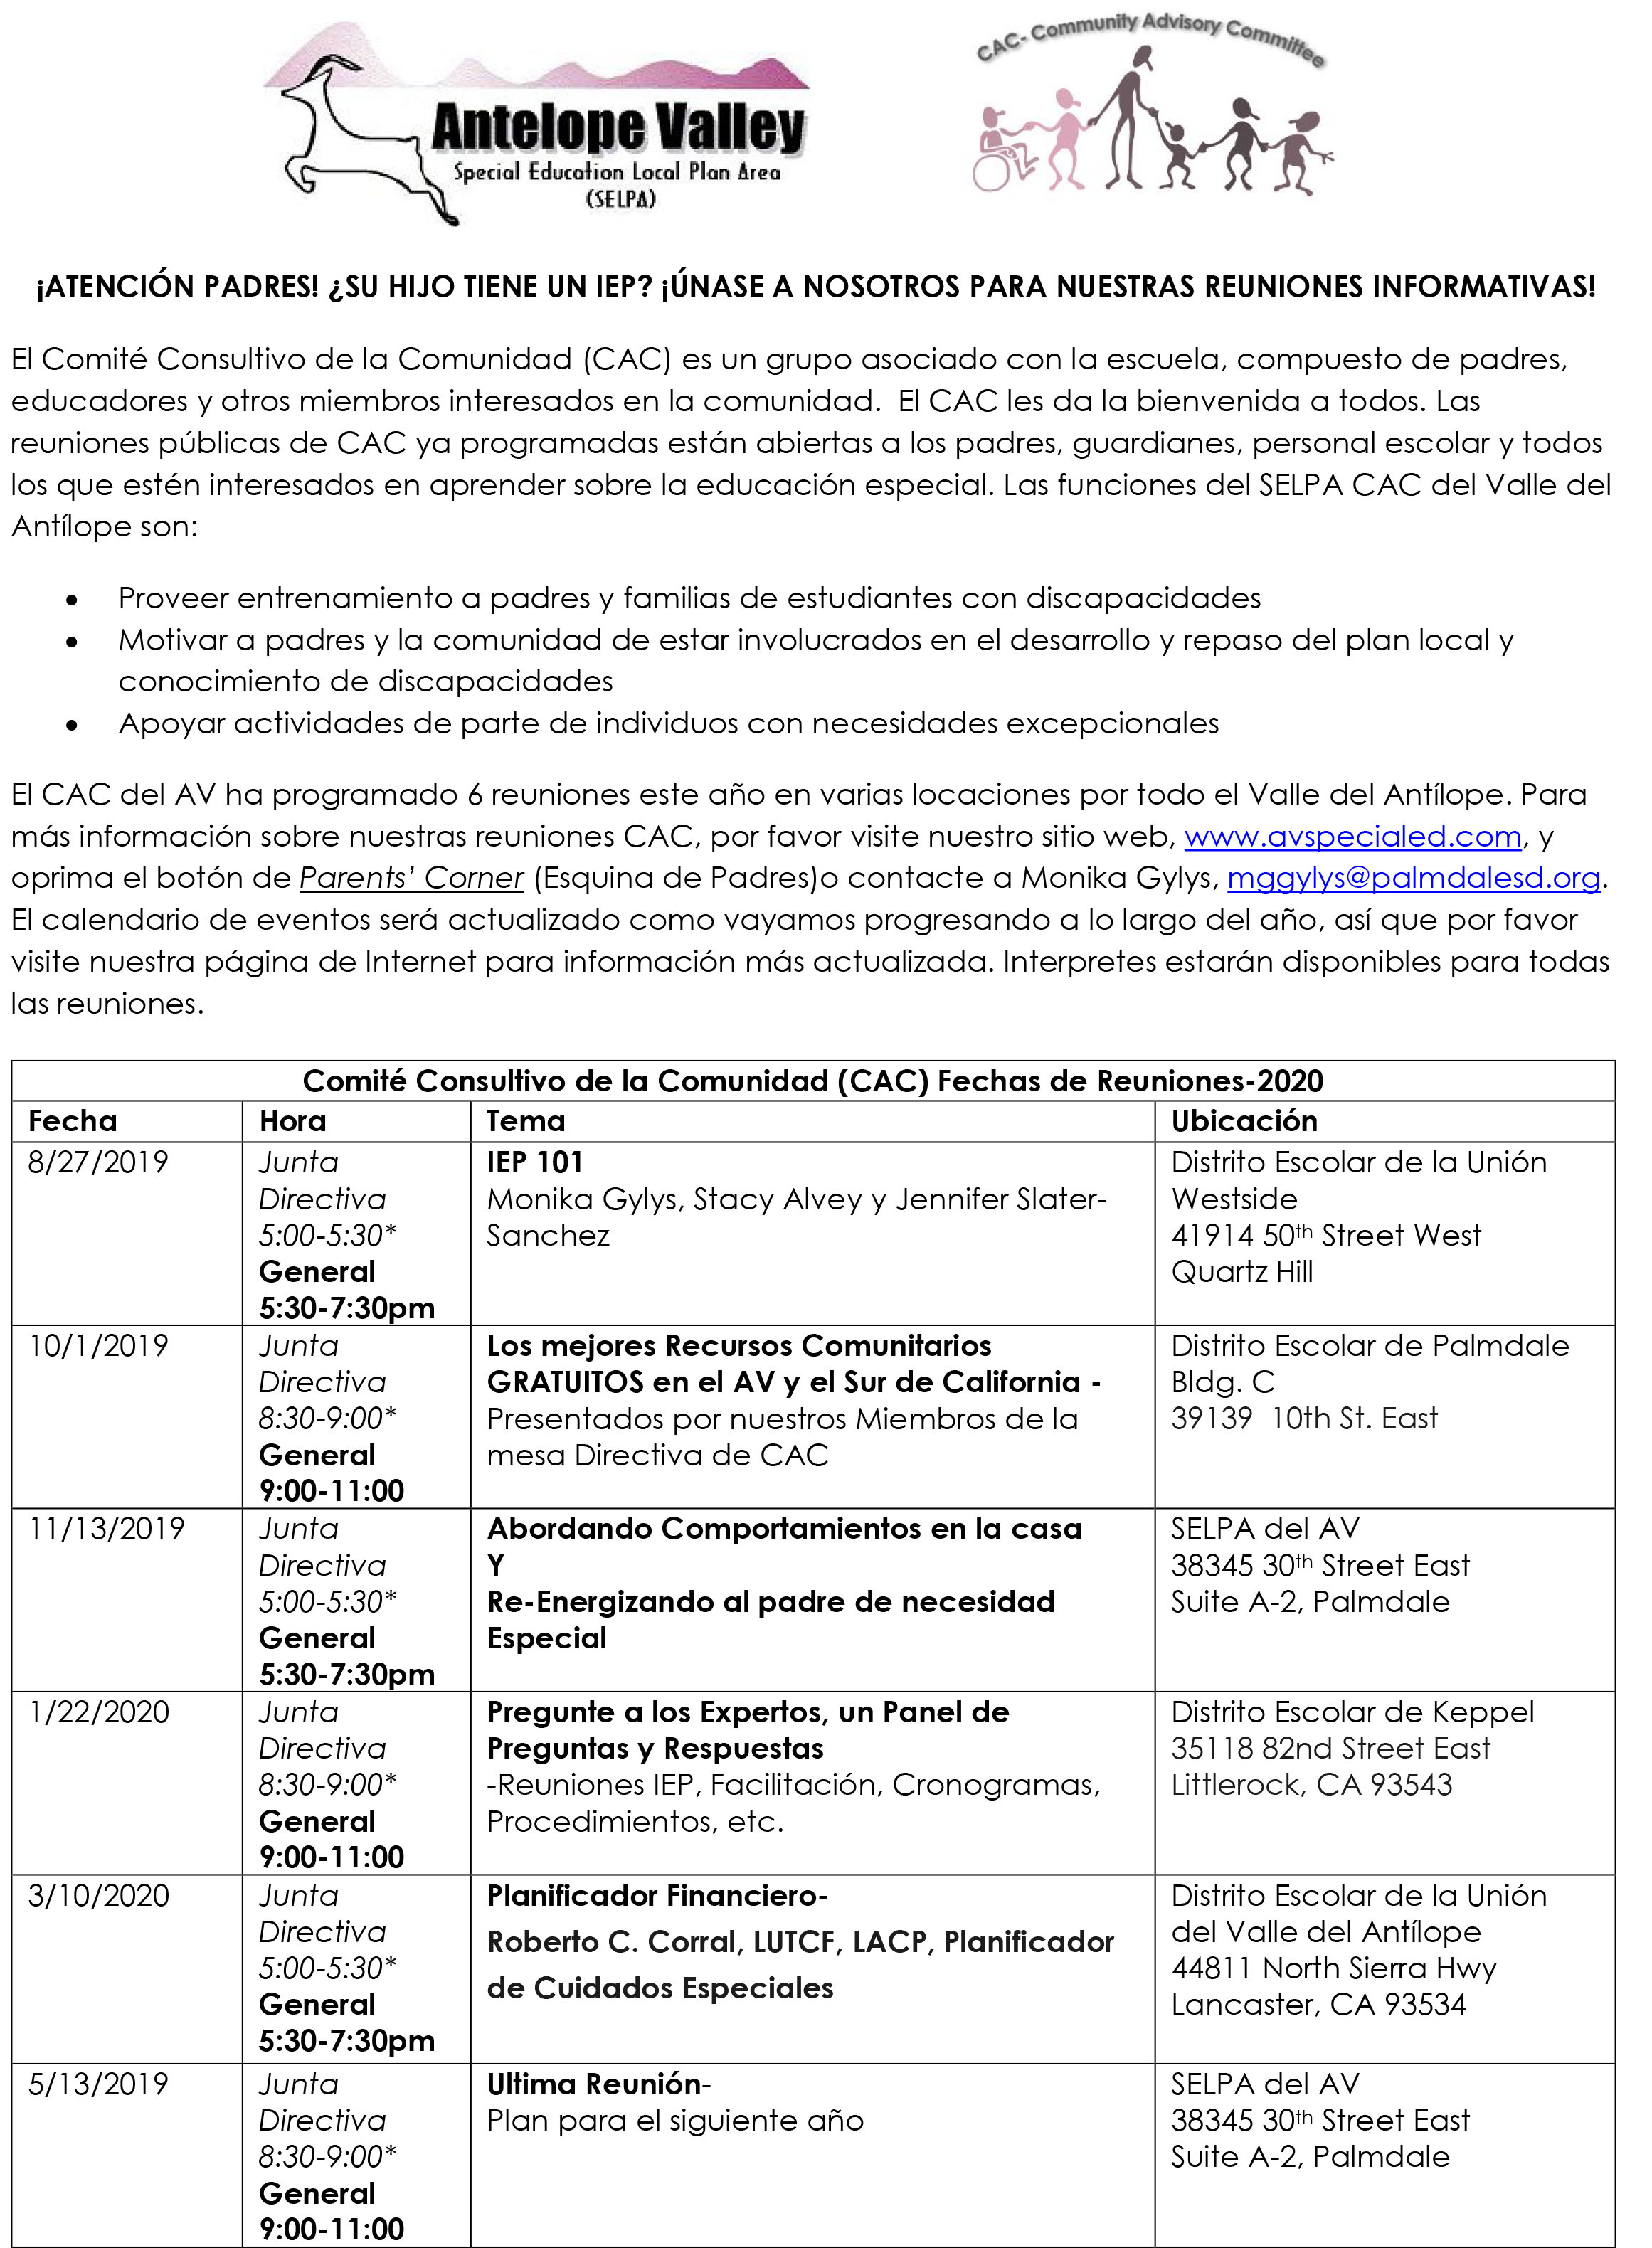 CAC (COMMUNITY ADVISORY COMMITTEE) Meeting DATES 2019-2020